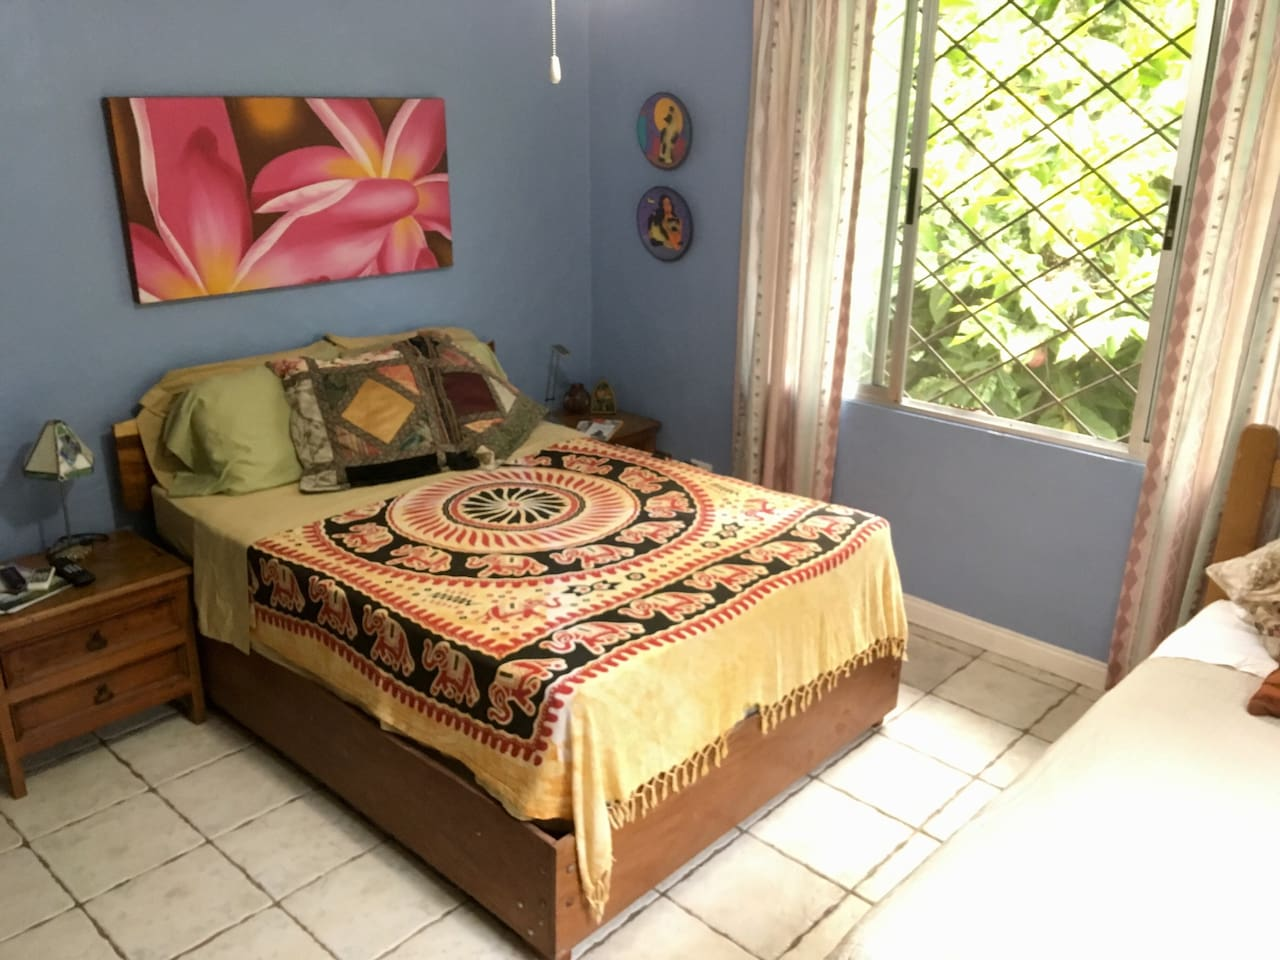 Double bed in a bright  room. Eclectic decor.